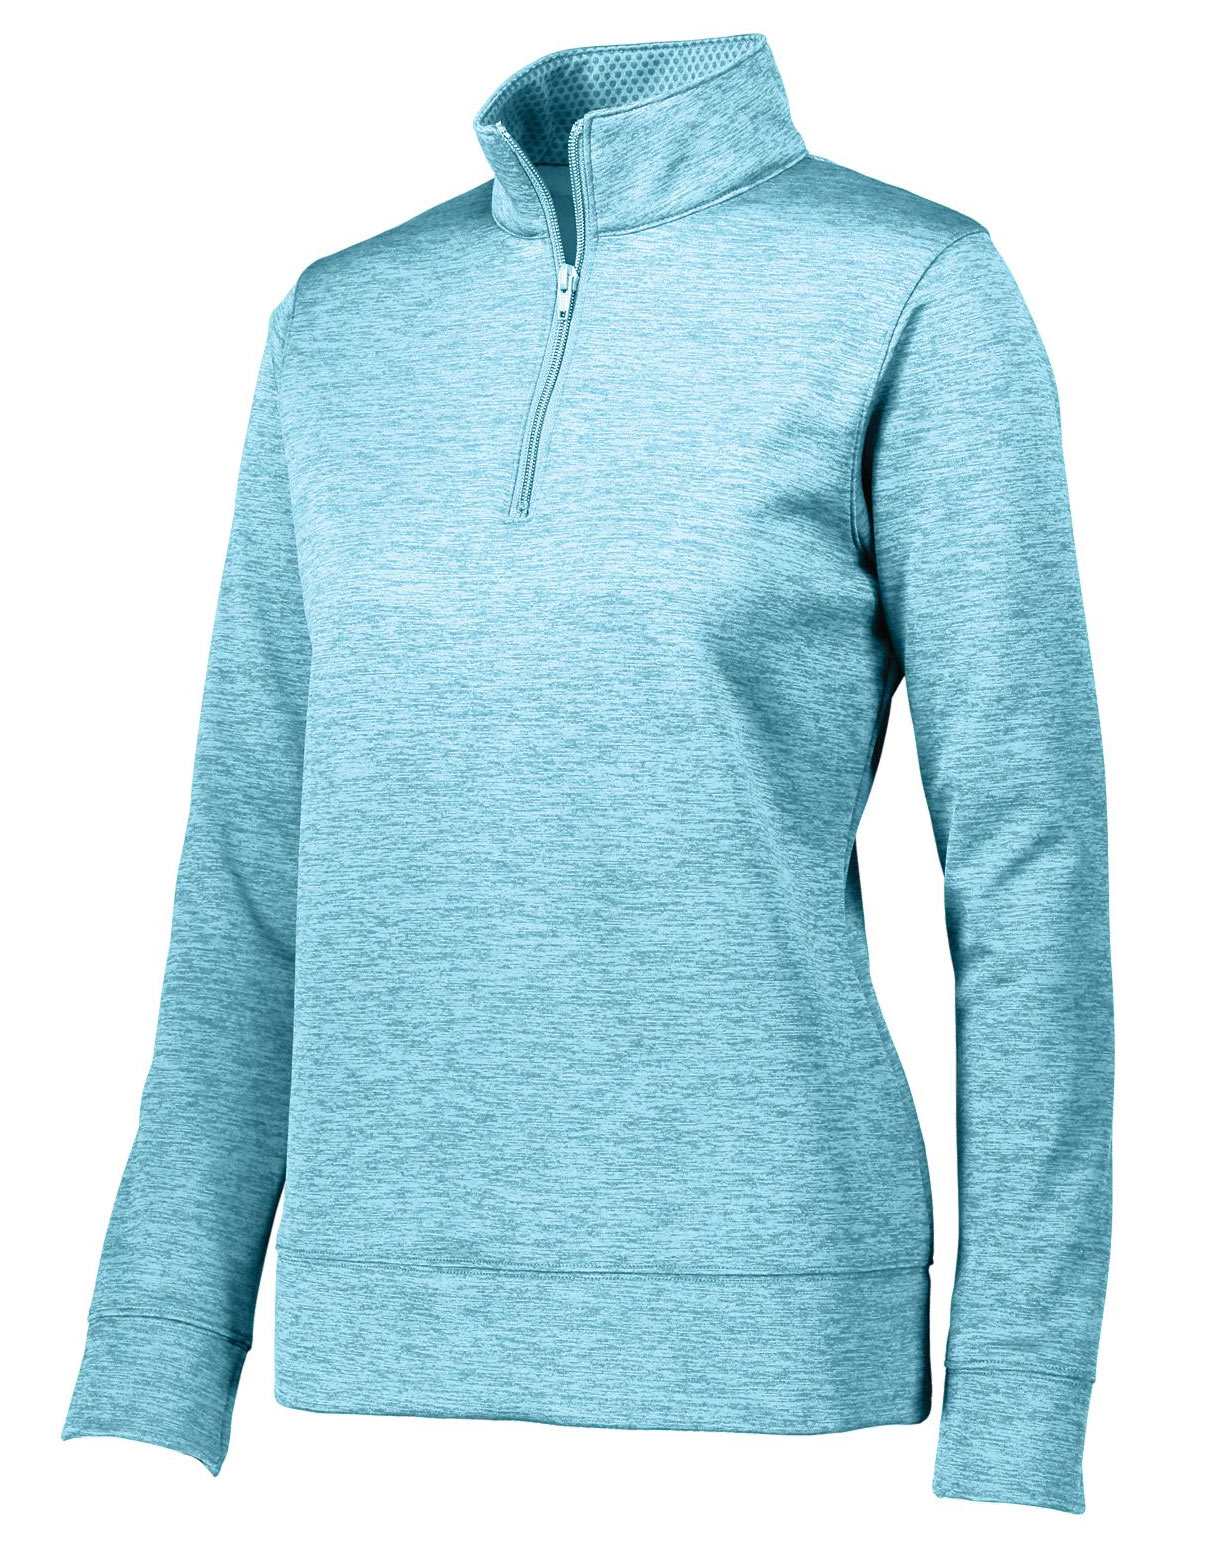 Augusta Ladies Stoked Tonal Heather 1/4 Zip